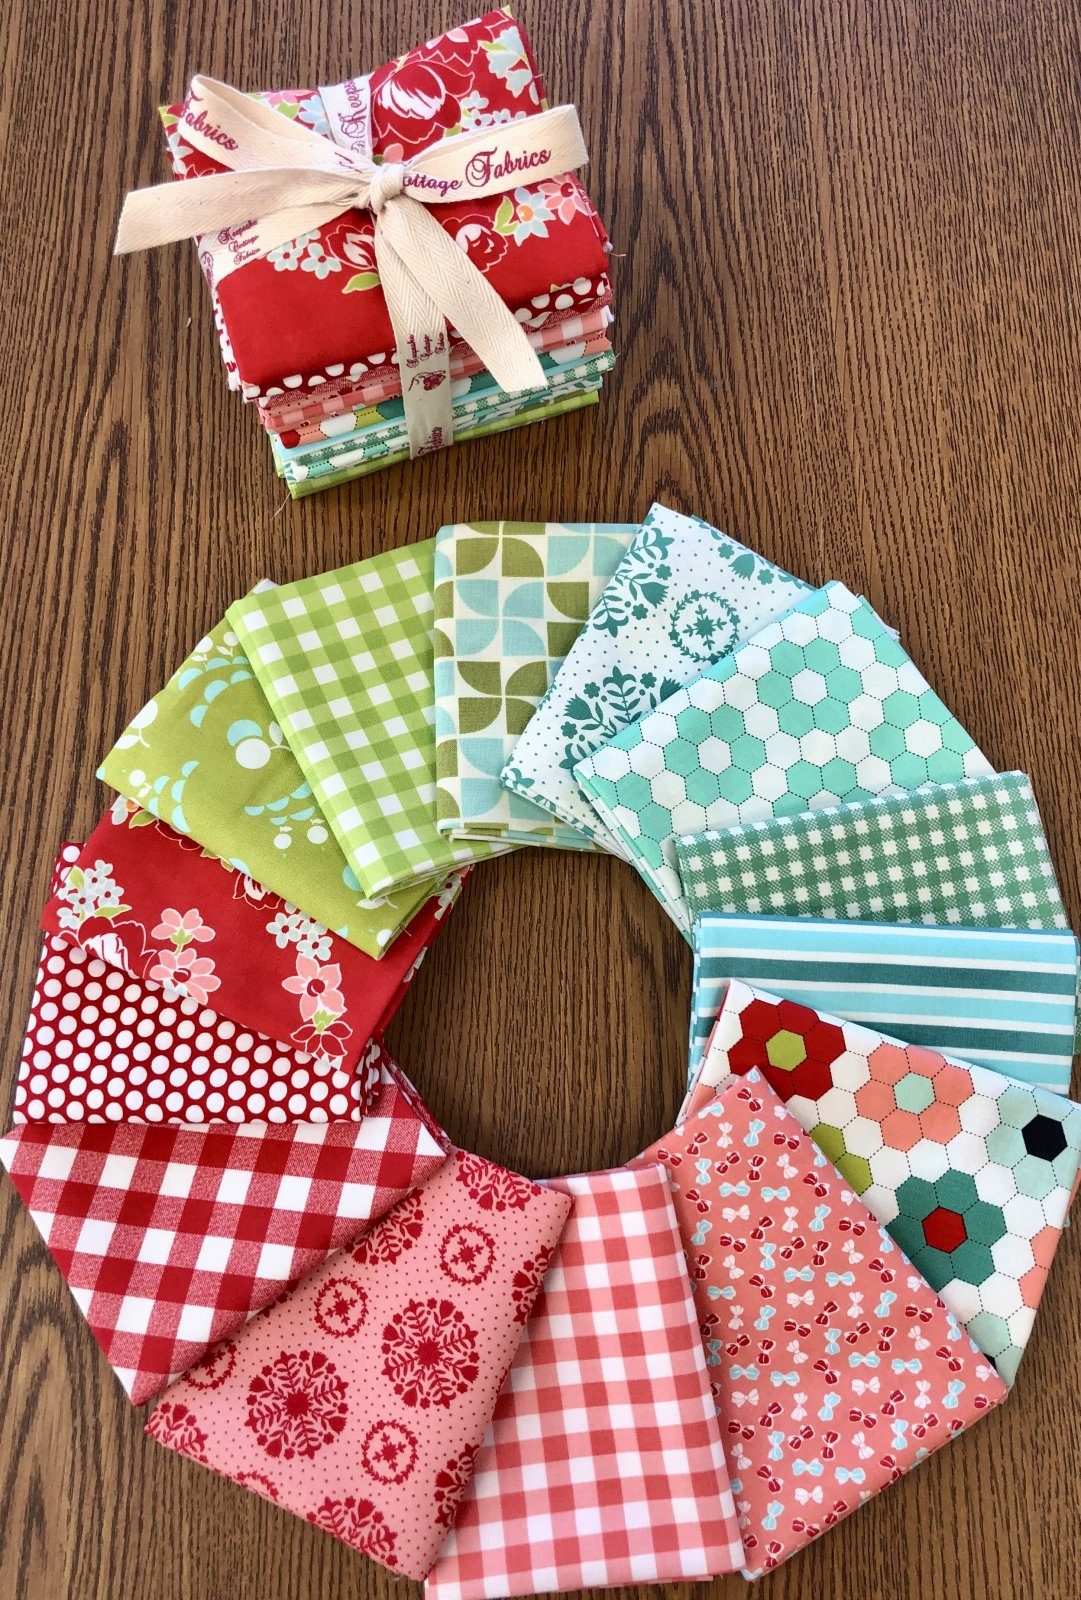 FAT QUARTER FRIDAY March 20, 2020